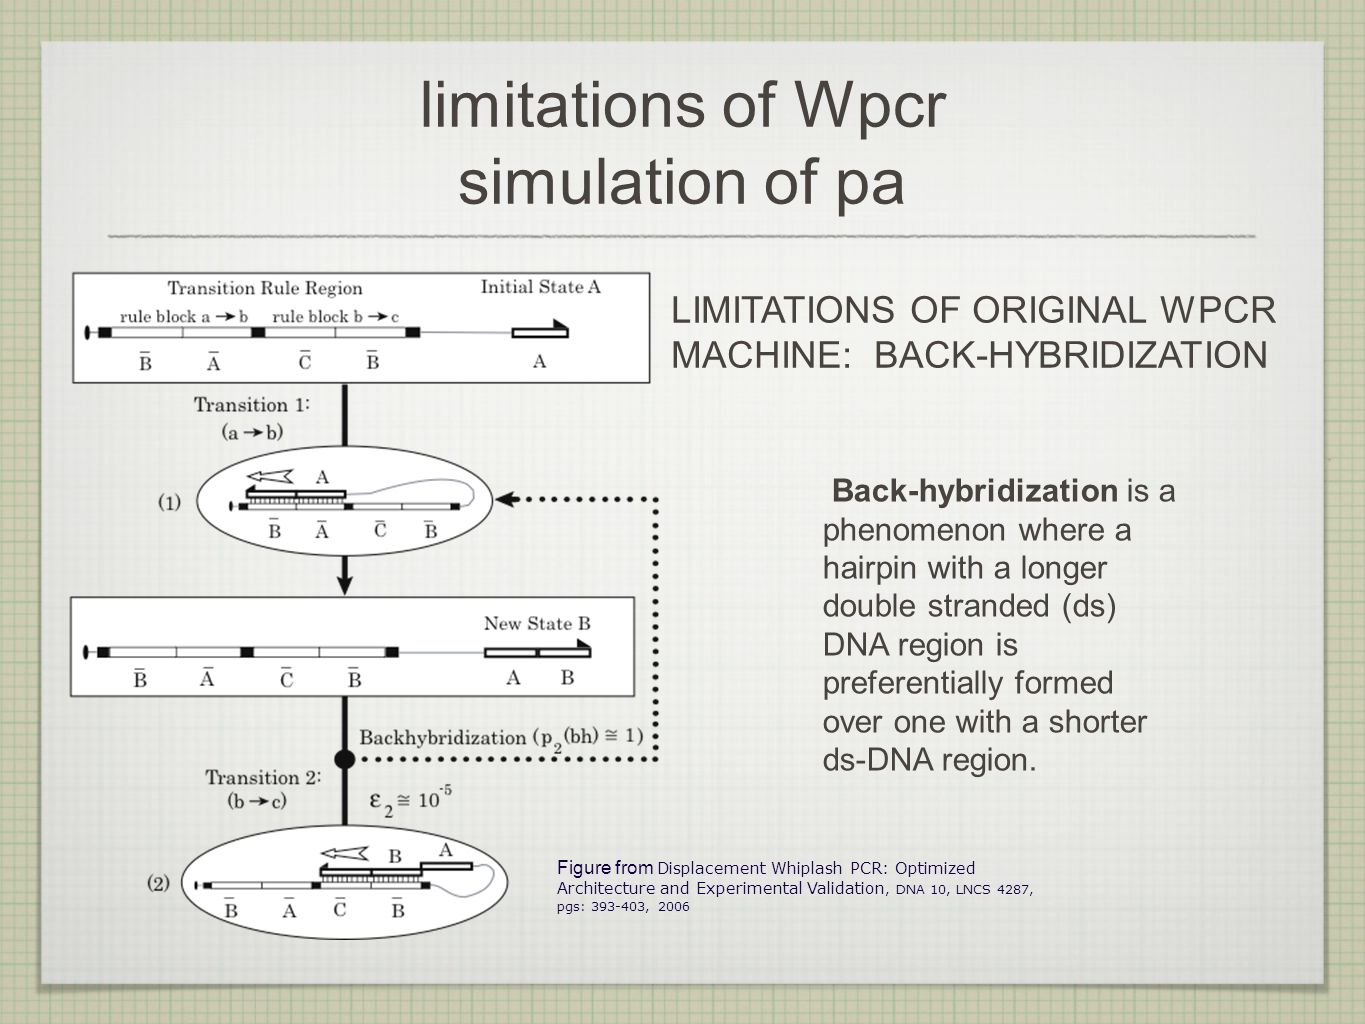 limitations of Wpcr simulation of pa LIMITATIONS OF ORIGINAL WPCR MACHINE: BACK-HYBRIDIZATION Figure from Displacement Whiplash PCR: Optimized Architecture and Experimental Validation, DNA 10, LNCS 4287, pgs: 393-403, 2006 Back-hybridization is a phenomenon where a hairpin with a longer double stranded (ds) DNA region is preferentially formed over one with a shorter ds-DNA region.